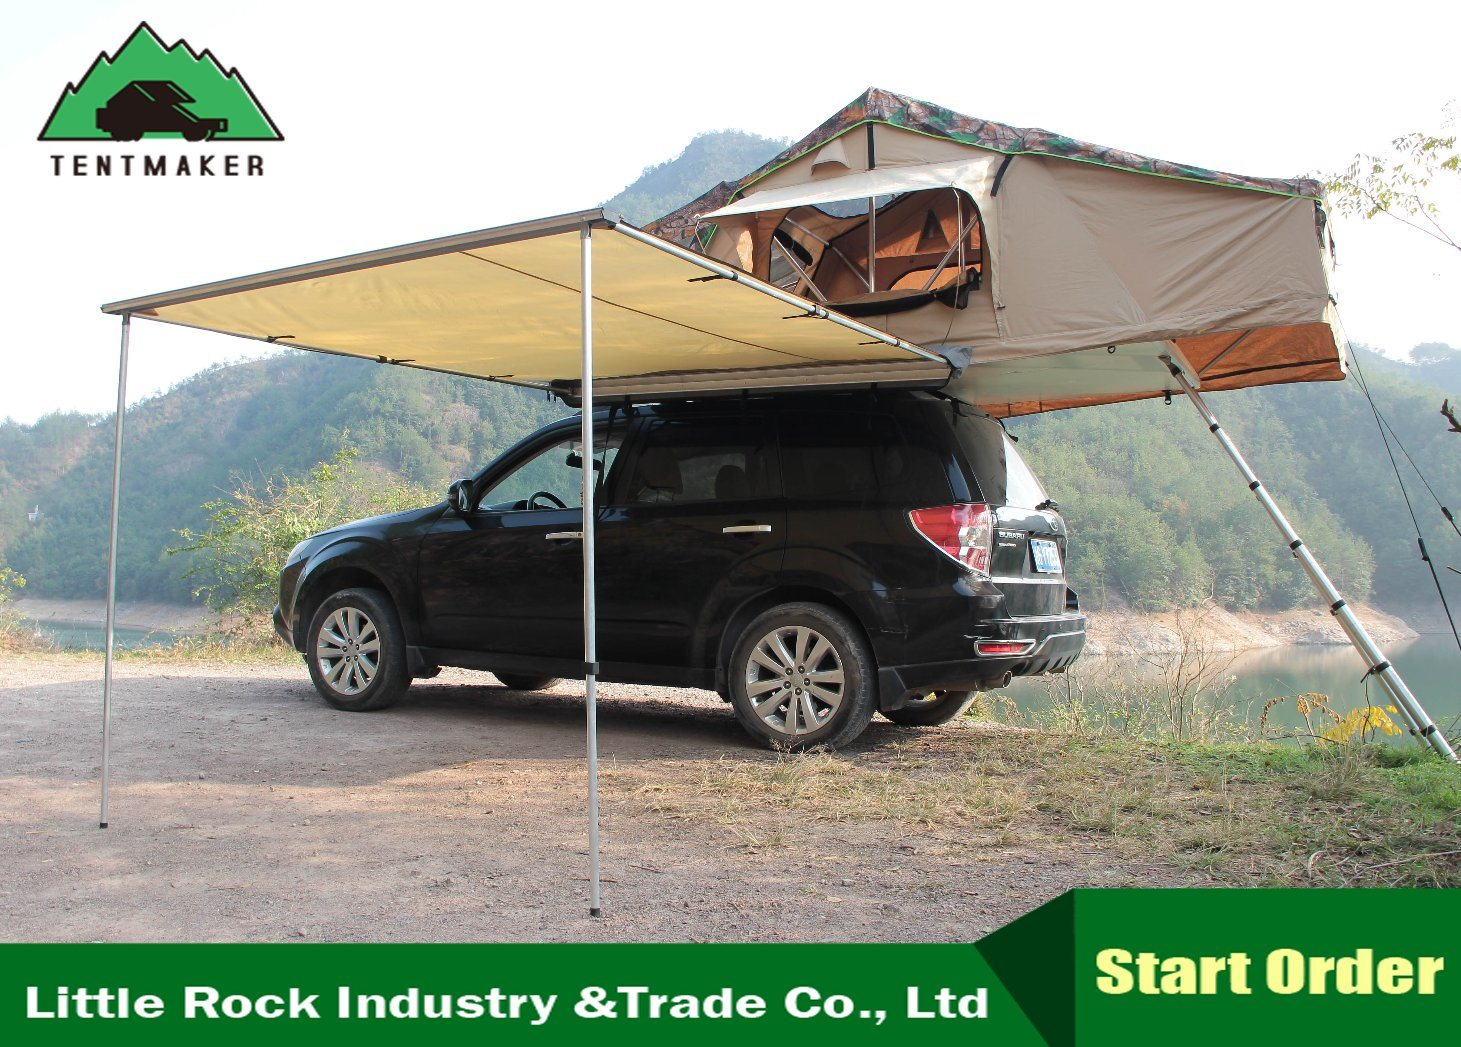 4X4 Accessories Awning Tent C&ing Car Awning Car Side Awning & China 4X4 Accessories Awning Tent Camping Car Awning Car Side Awning ...